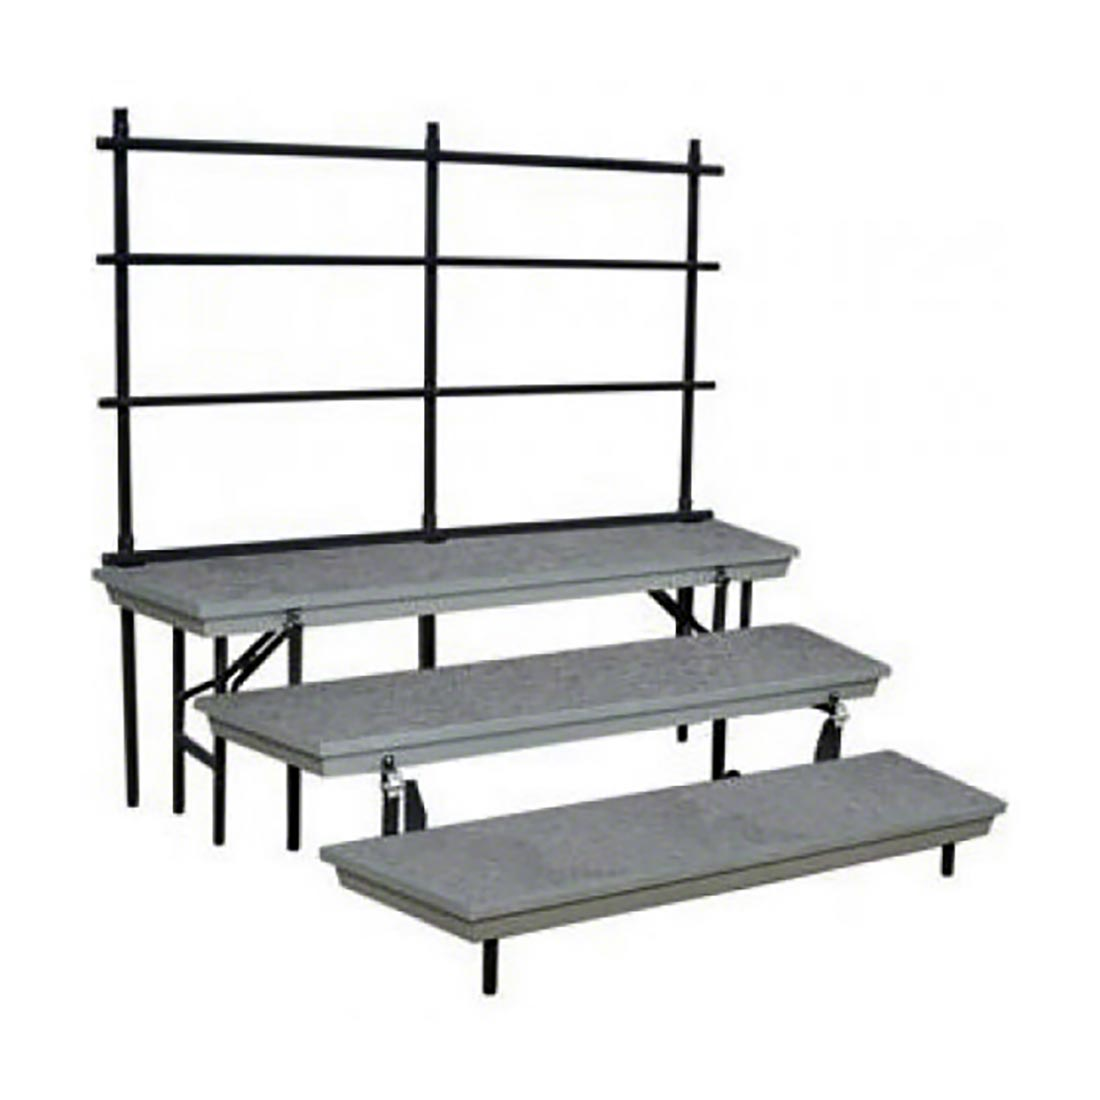 national public seating 3 level tapered trans port standing choral risers guard - National Public Seating